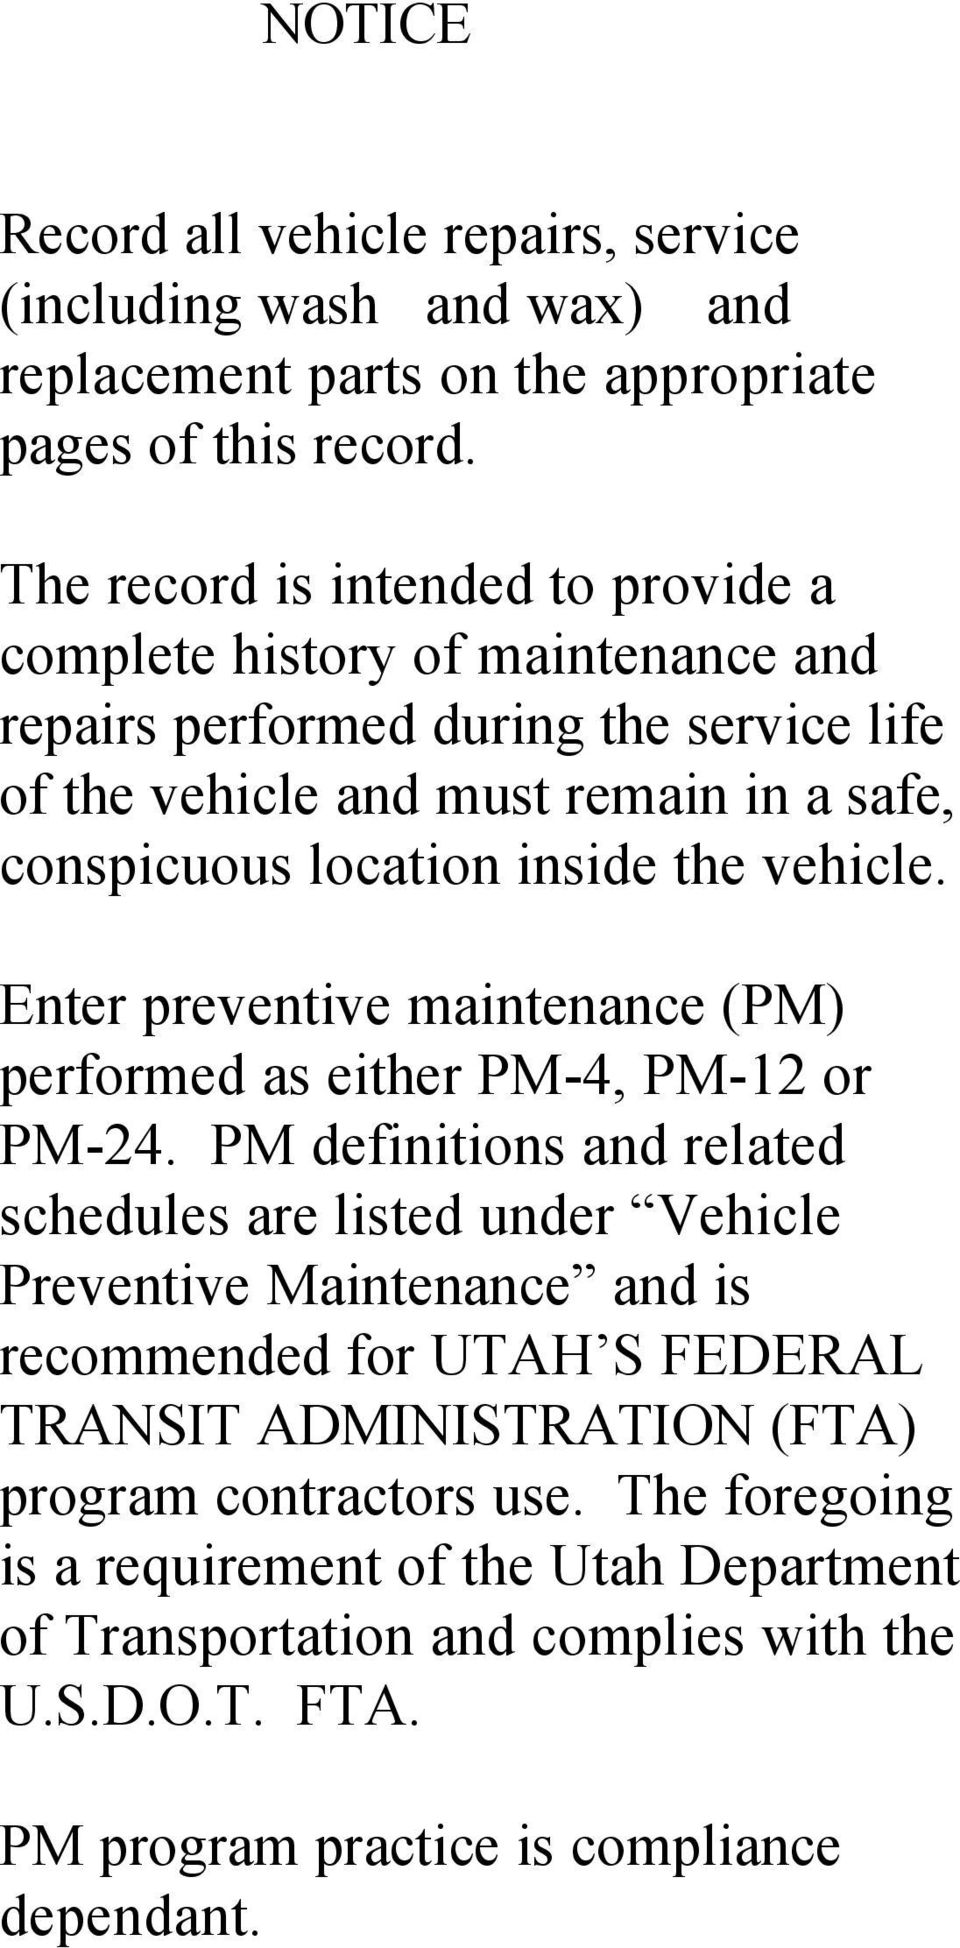 the vehicle. Enter preventive maintenance (PM) performed as either PM-4, PM-12 or PM-24.